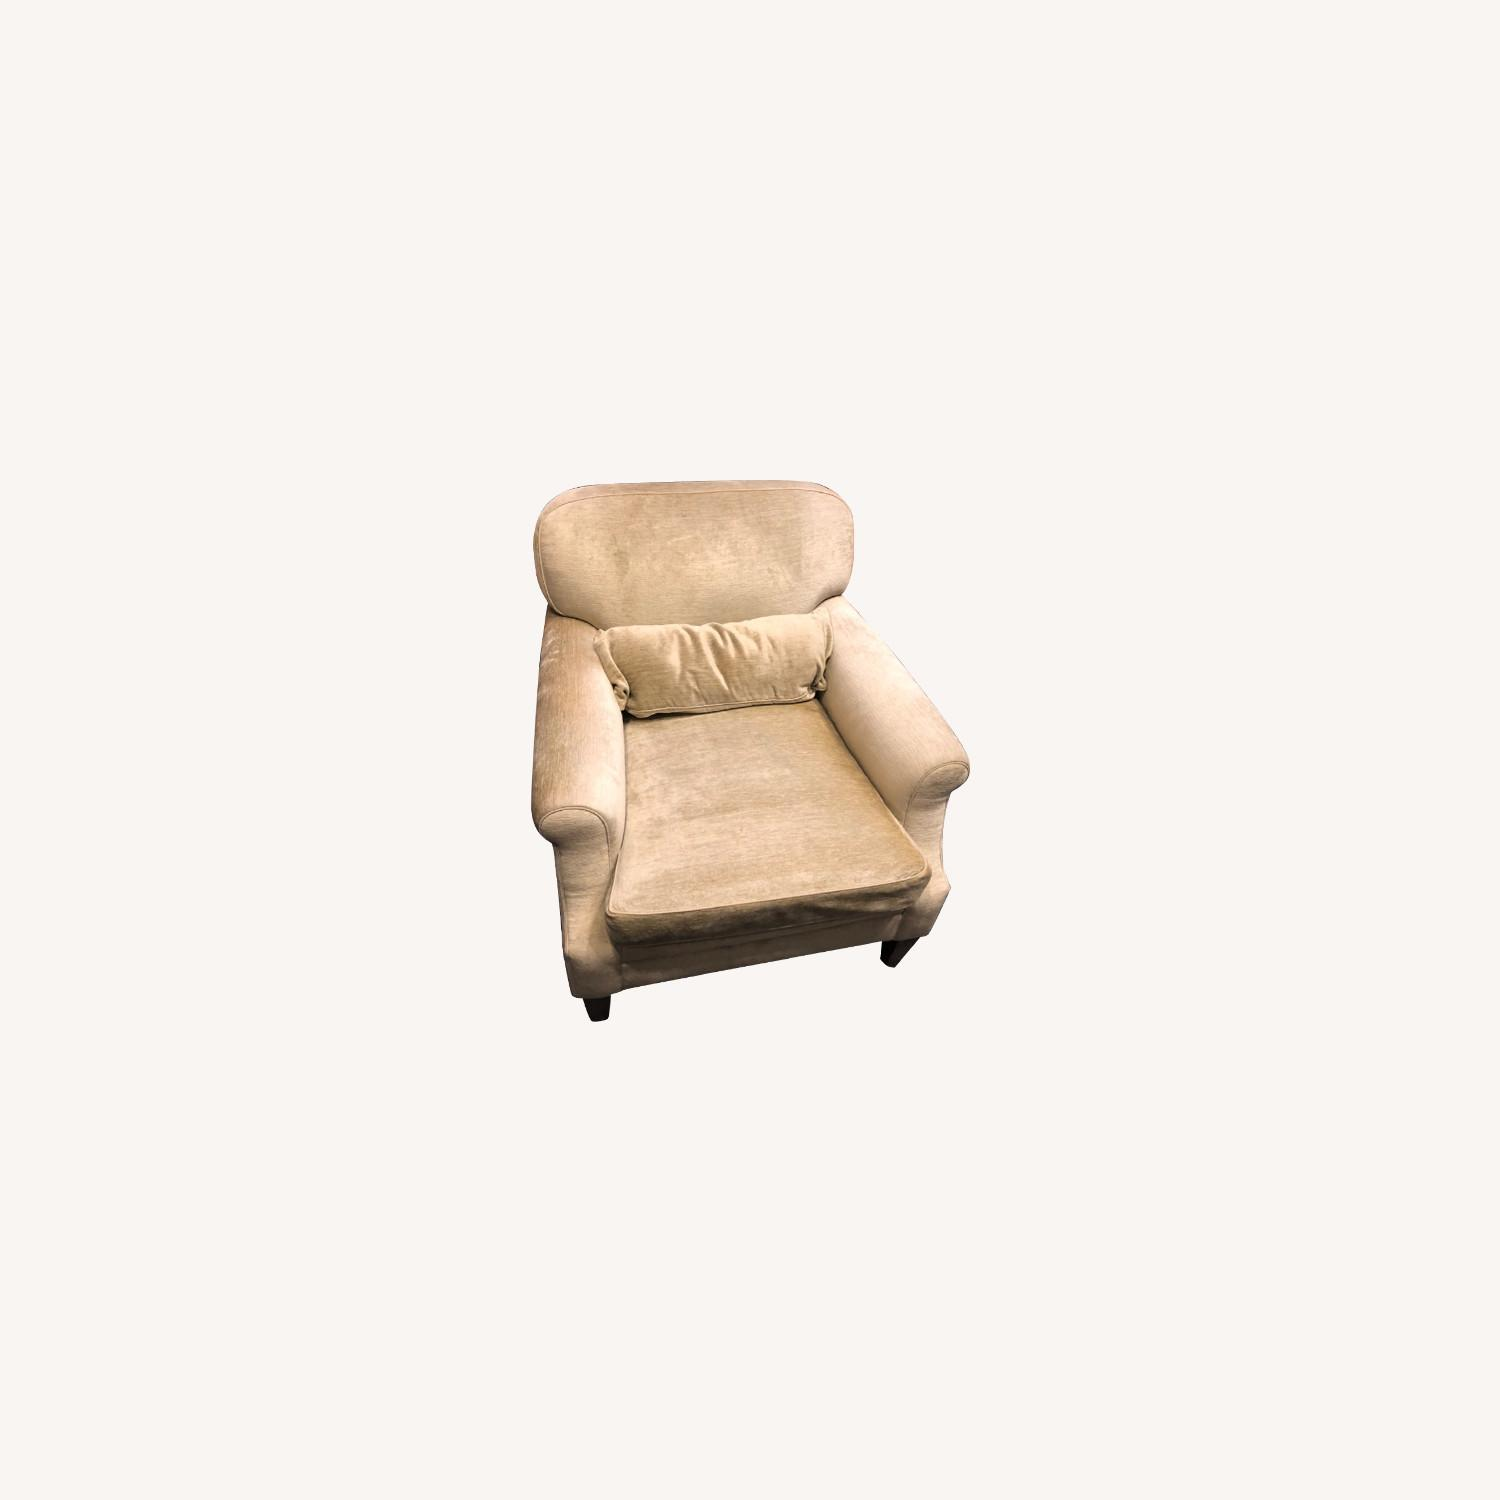 O Henry House Upholstery Chair - image-0